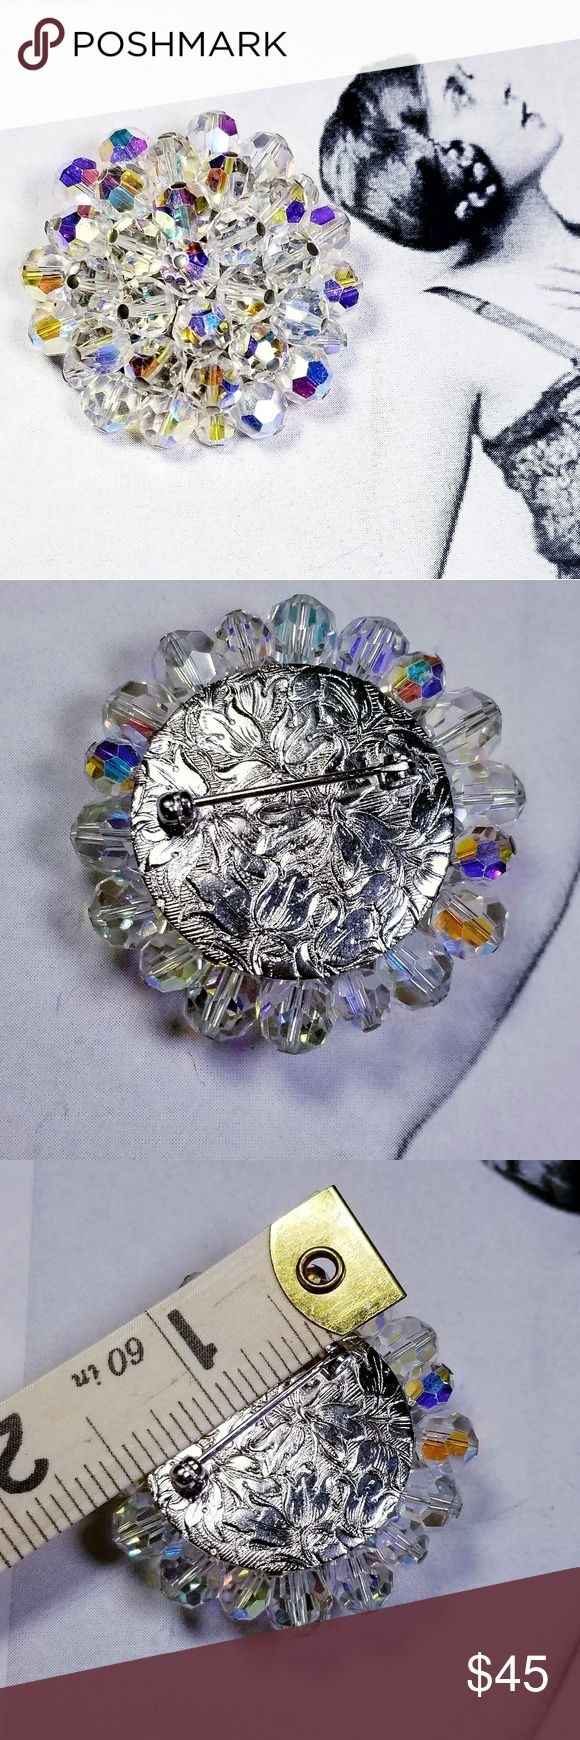 "Vintage rainbow Aurora Borealis crystal brooch Vintage rainbow Aurora Borealis crystal brooch with silver tone floral motif repourposse backing. Pina nd clasp are sturdy and in good working order. Measures 1.75"" x 1.75"" and is in excellent vintage condition reasonable offers welcome and accepted. Add to a bundle and I'll offer you a great deal ❤ looks great with other AB jewelry I have listed Vintage Jewelry Brooches"